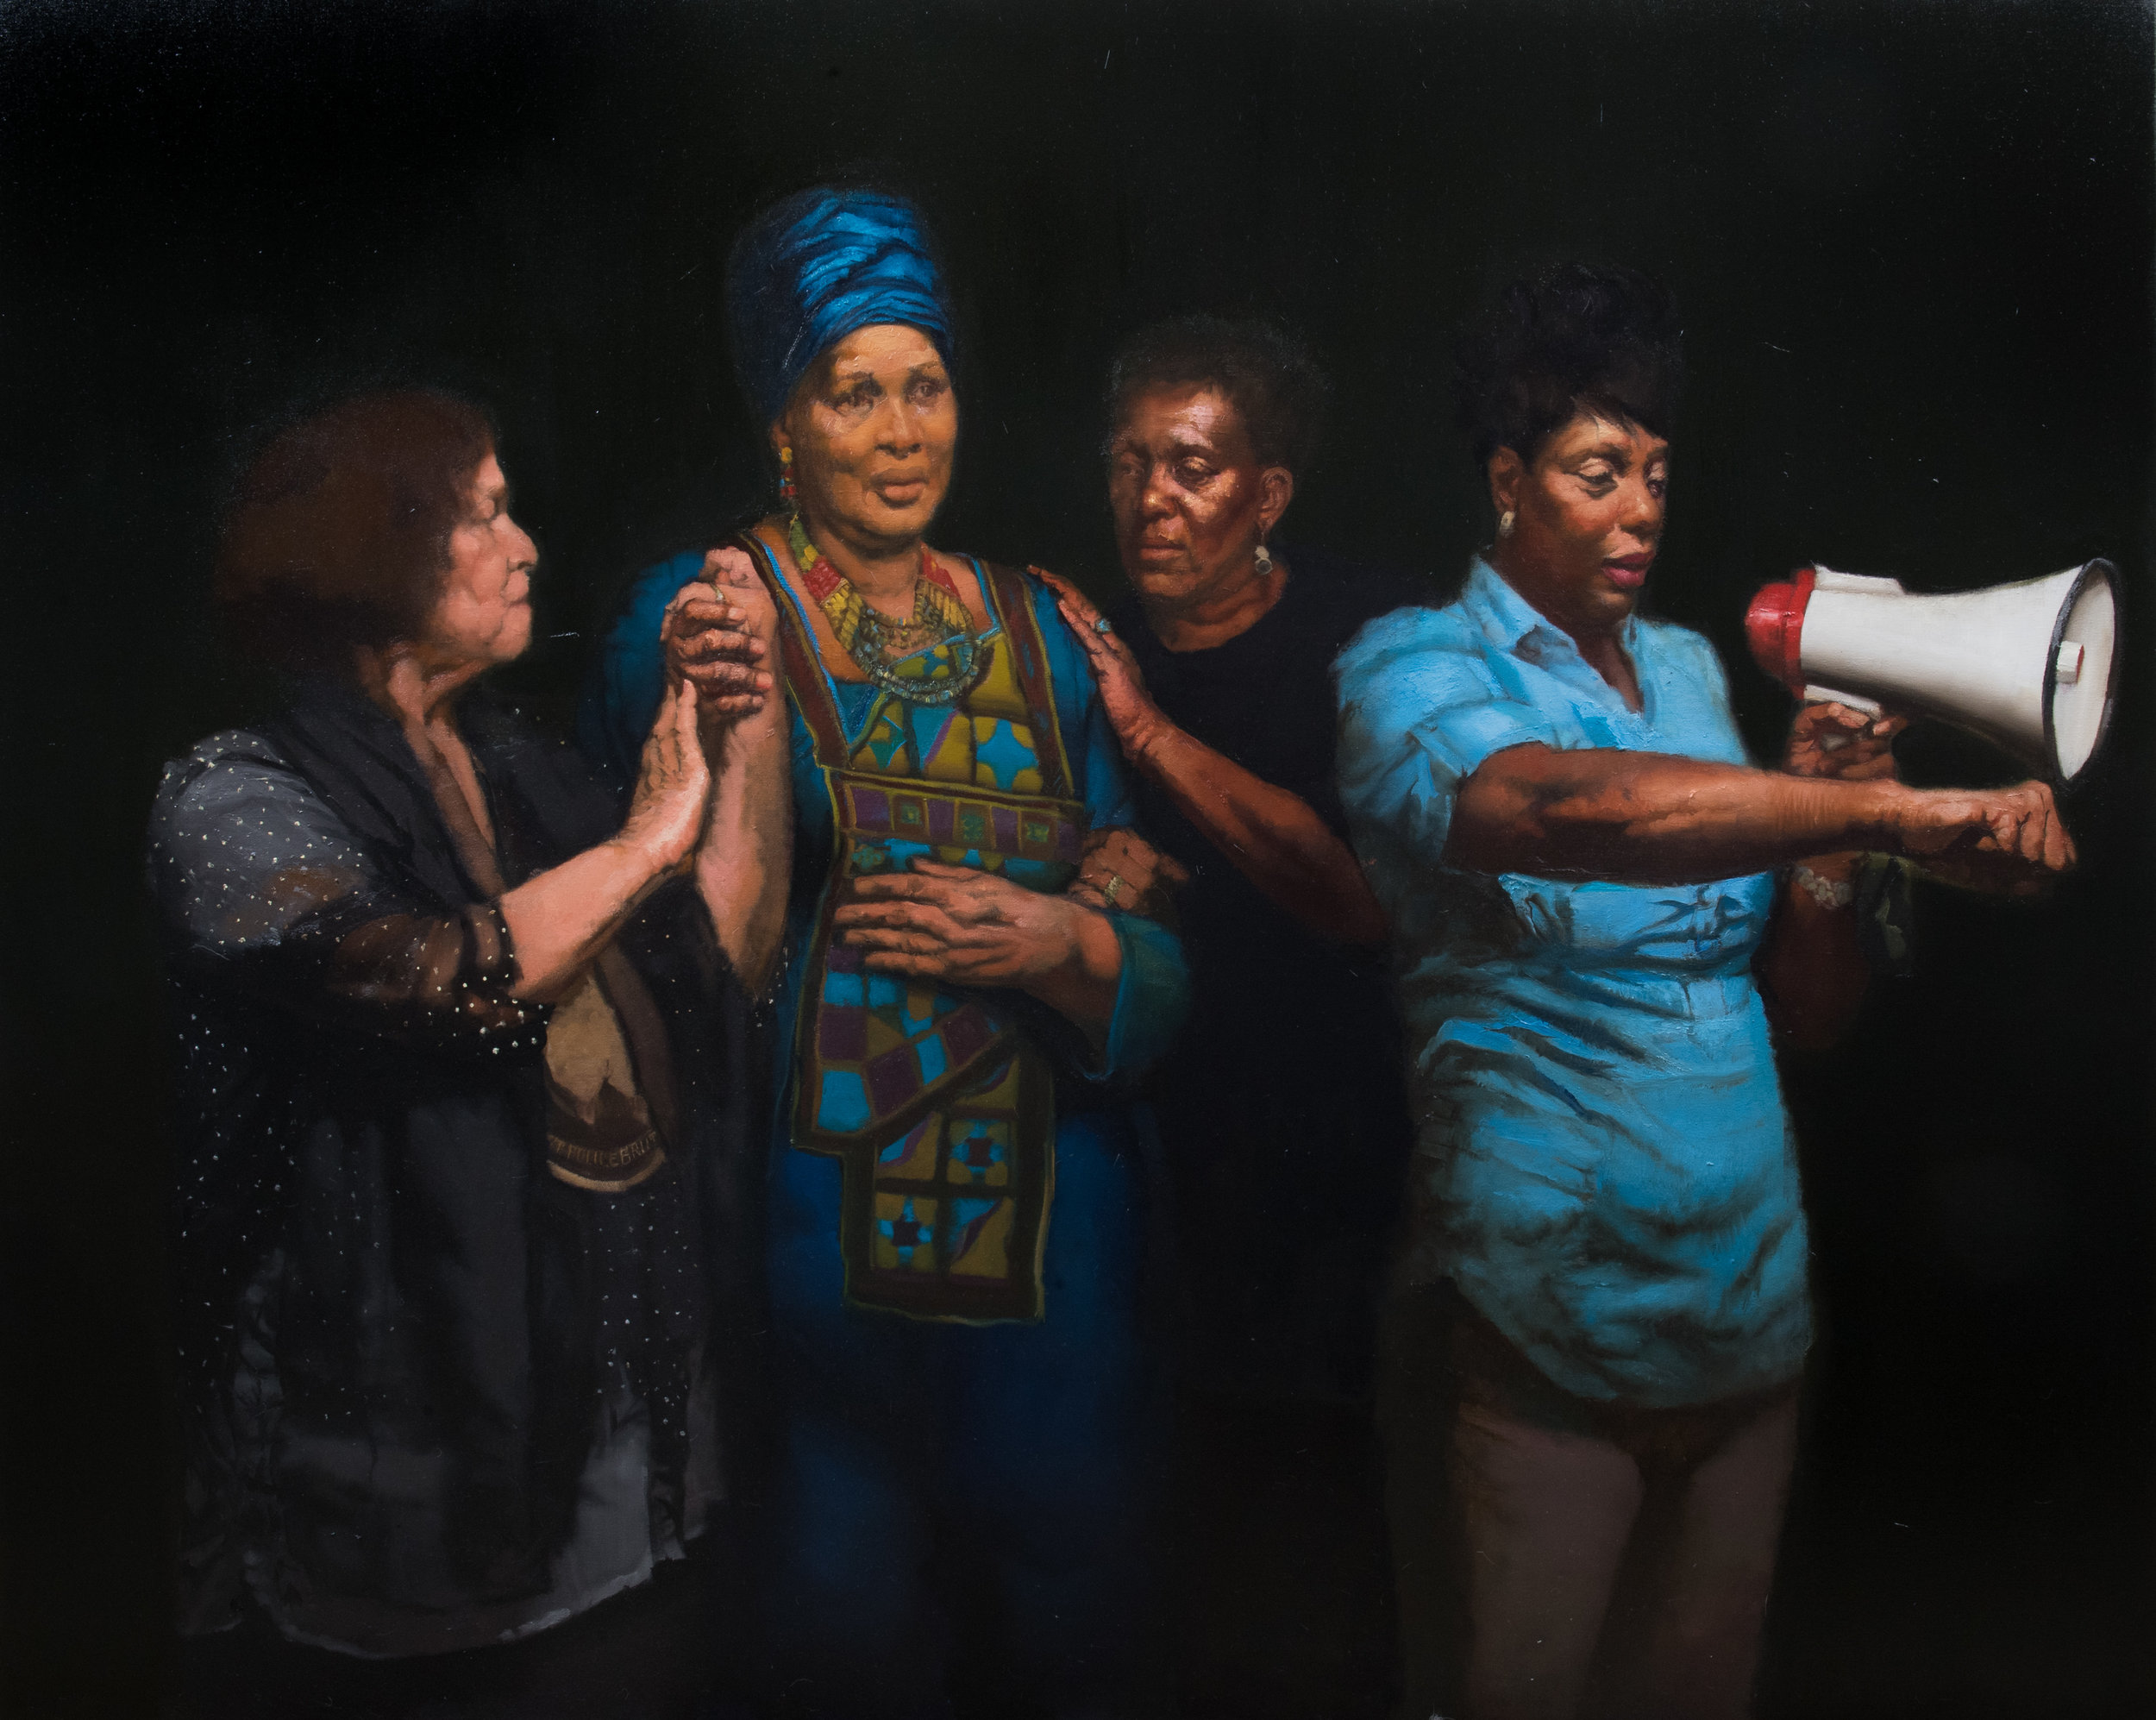 Sylvia Maier | 4 Mothers - We Shall Not Be Moved | oil on Linen | 75x60 |2016